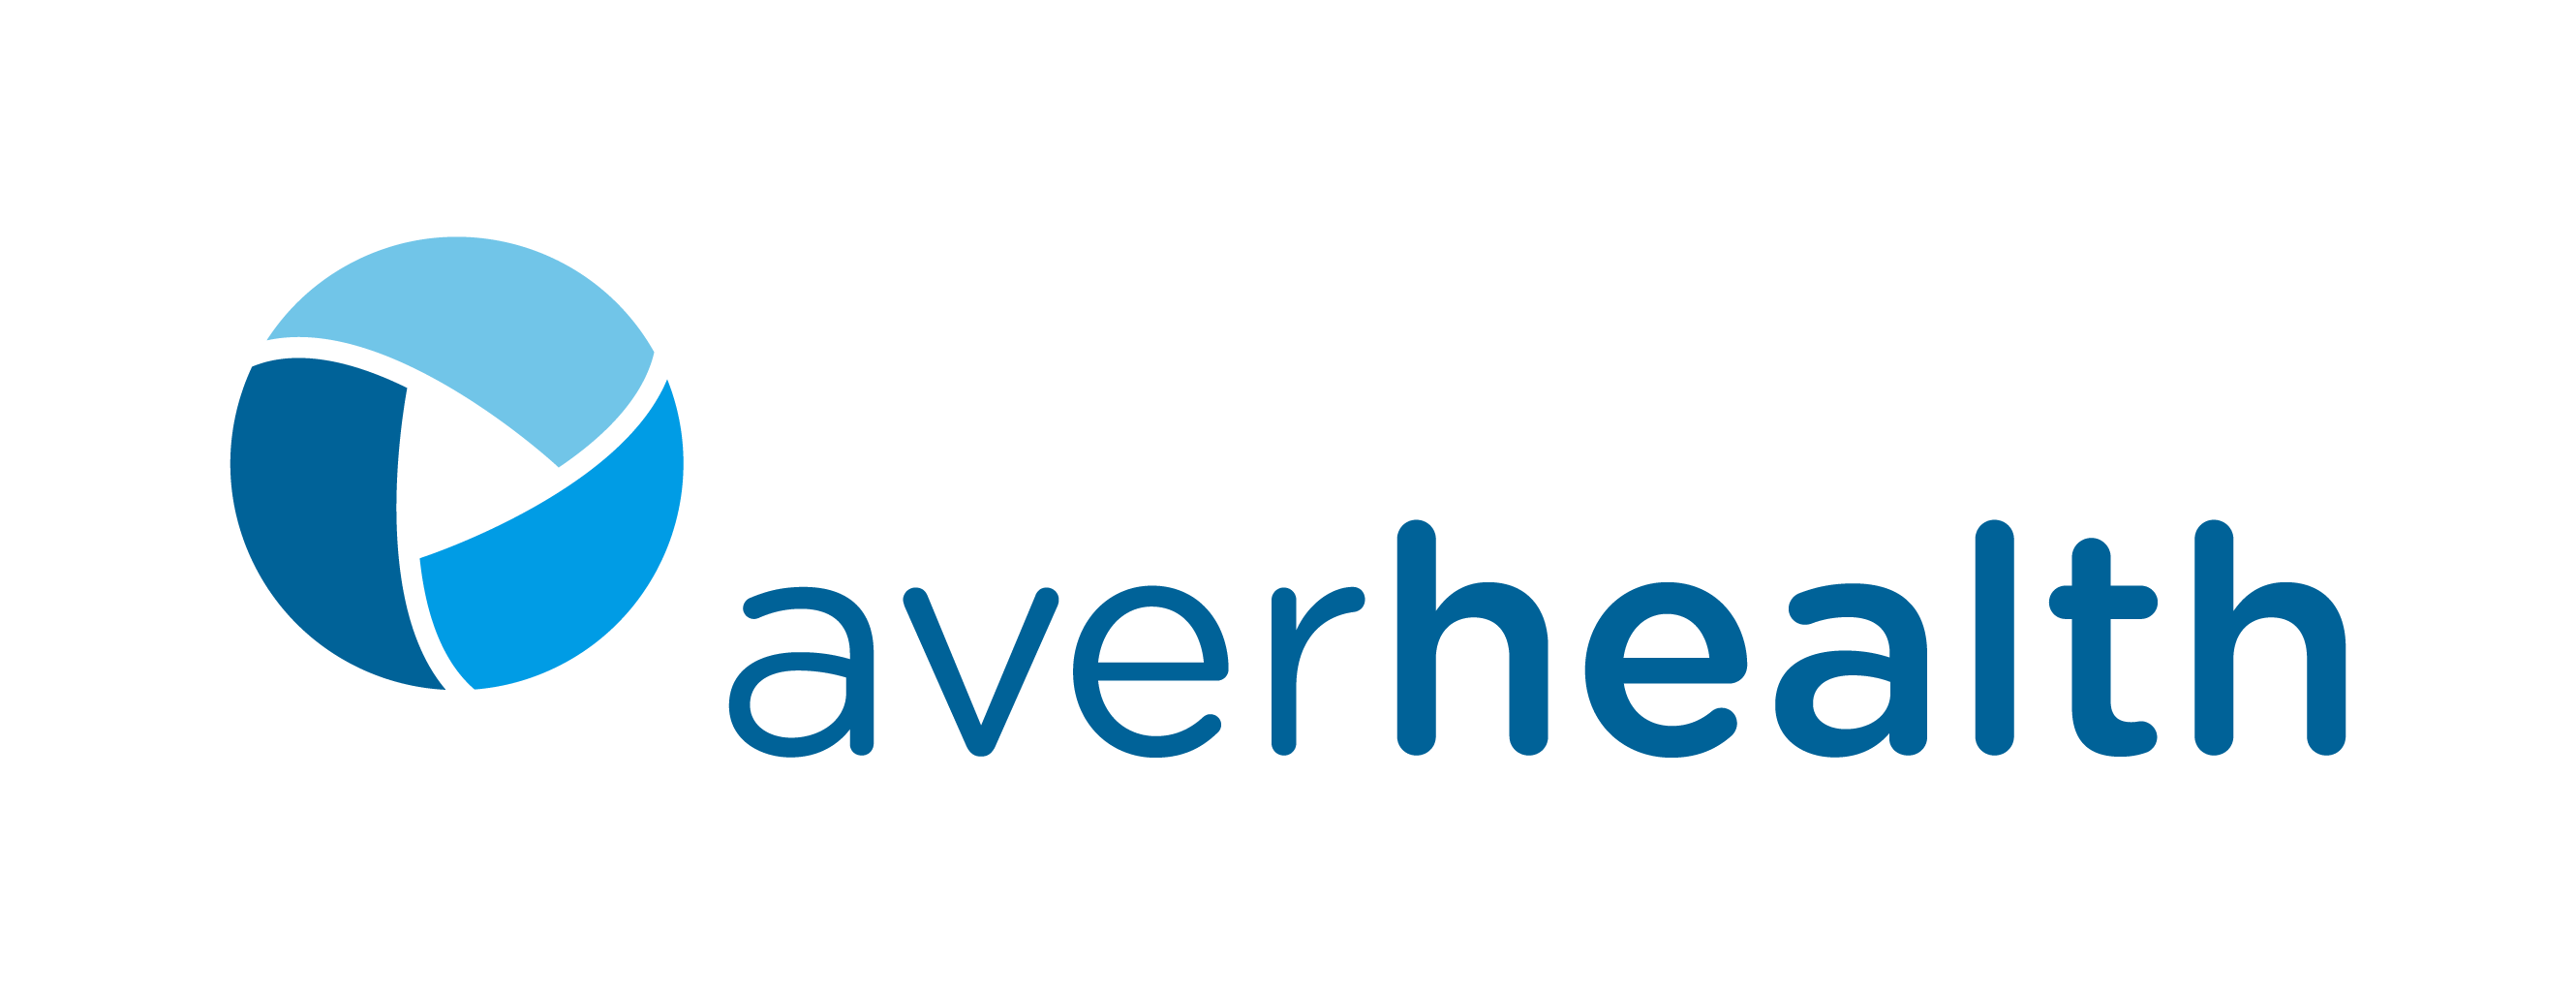 Technical Support Specialist job in Richmond - averhealth